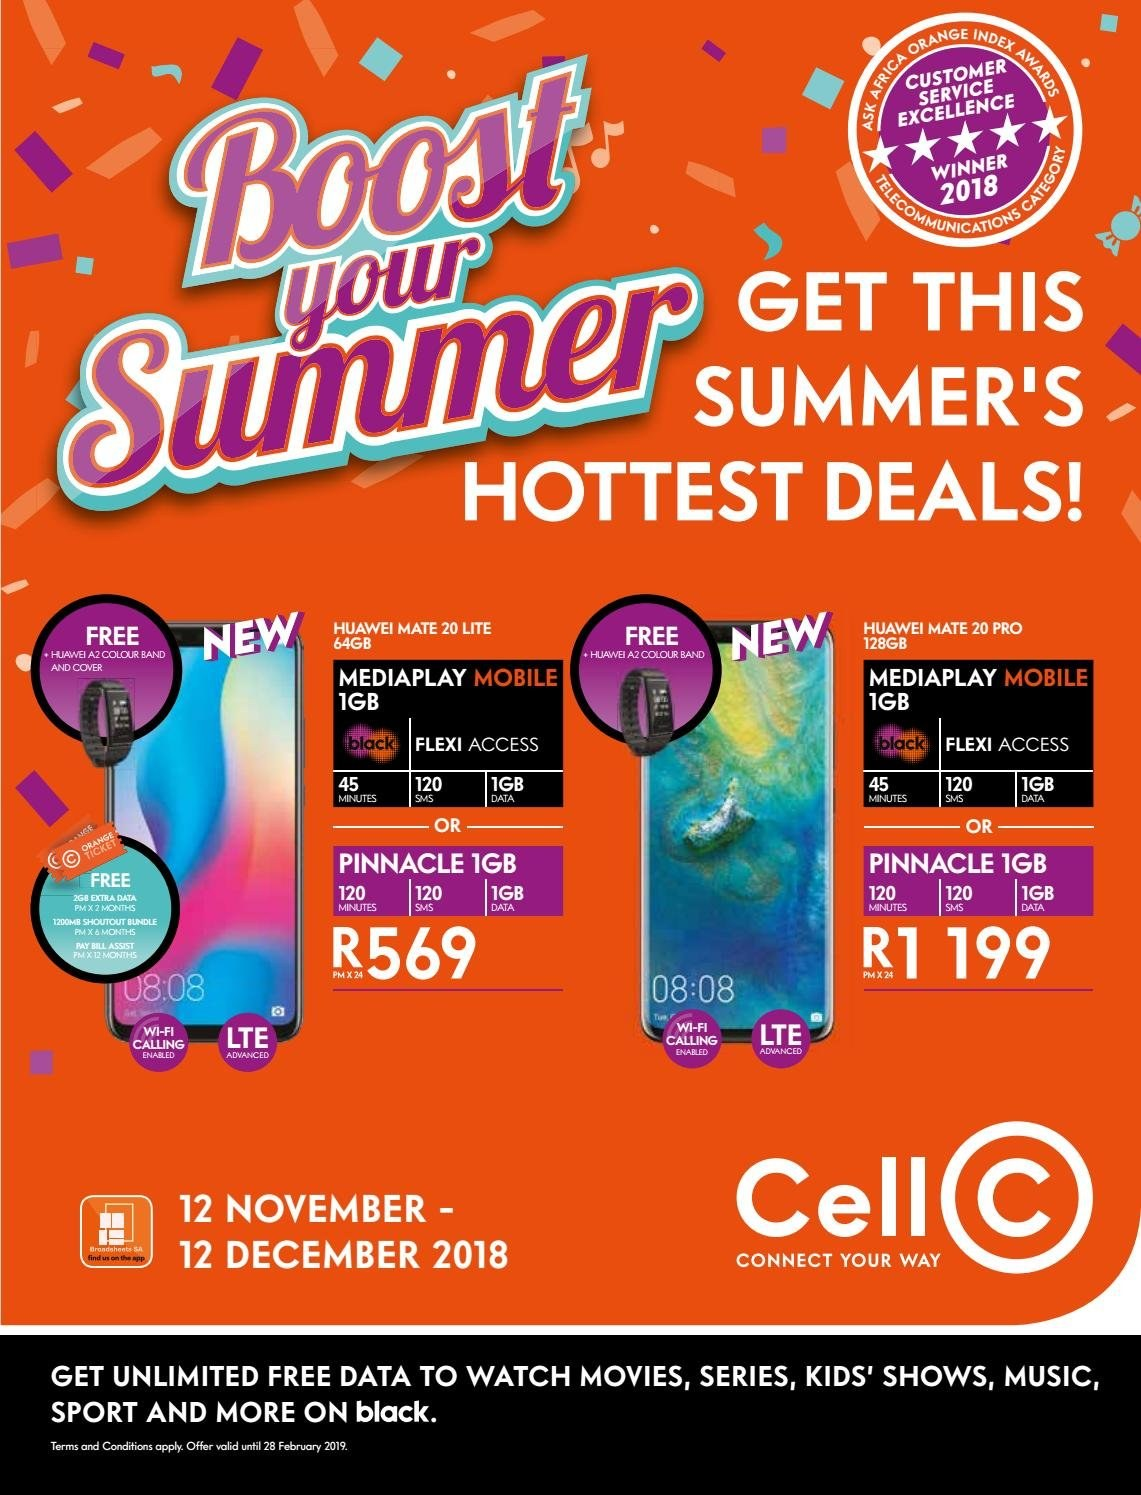 Cell C special - 11.12.2018 - 12.12.2018 - Sales products - band, mate, watch, wifi, huawei. Page 1.